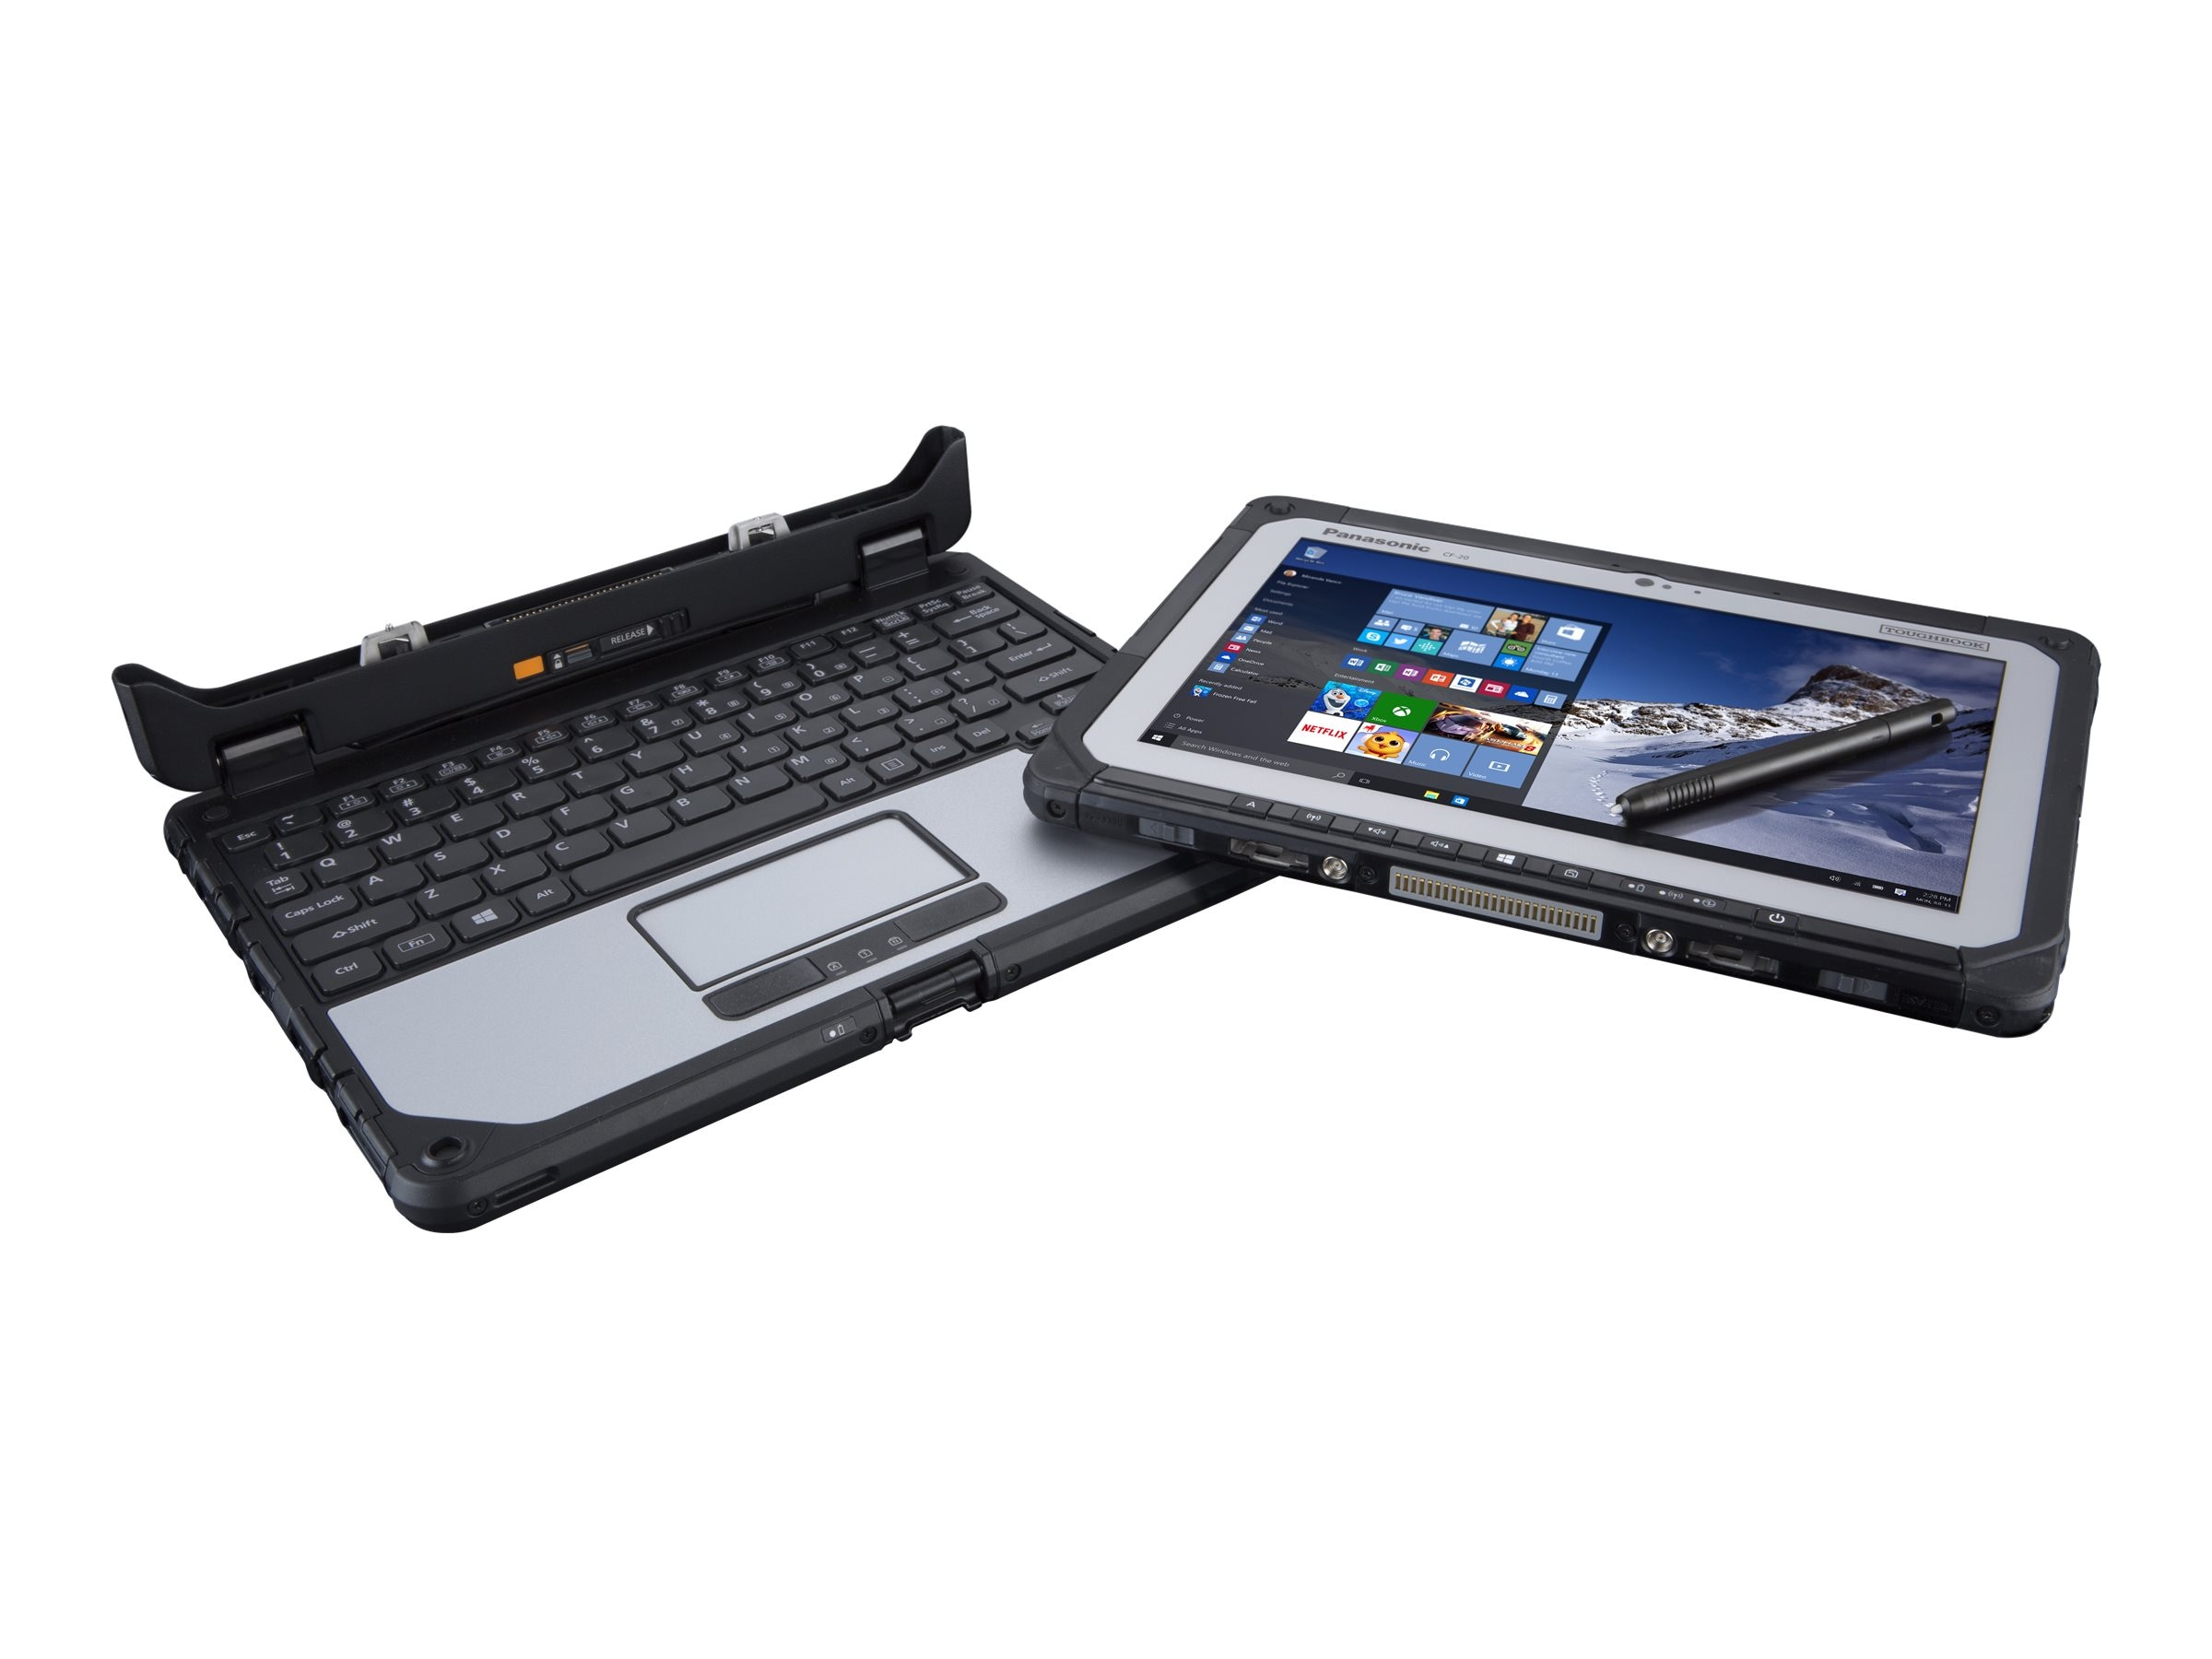 Panasonic Toughbook 20 vPro Core M5-6Y57 1.1GHz 10.1 WUXGA MT W7 (W10P COA), CF-20C0255KM